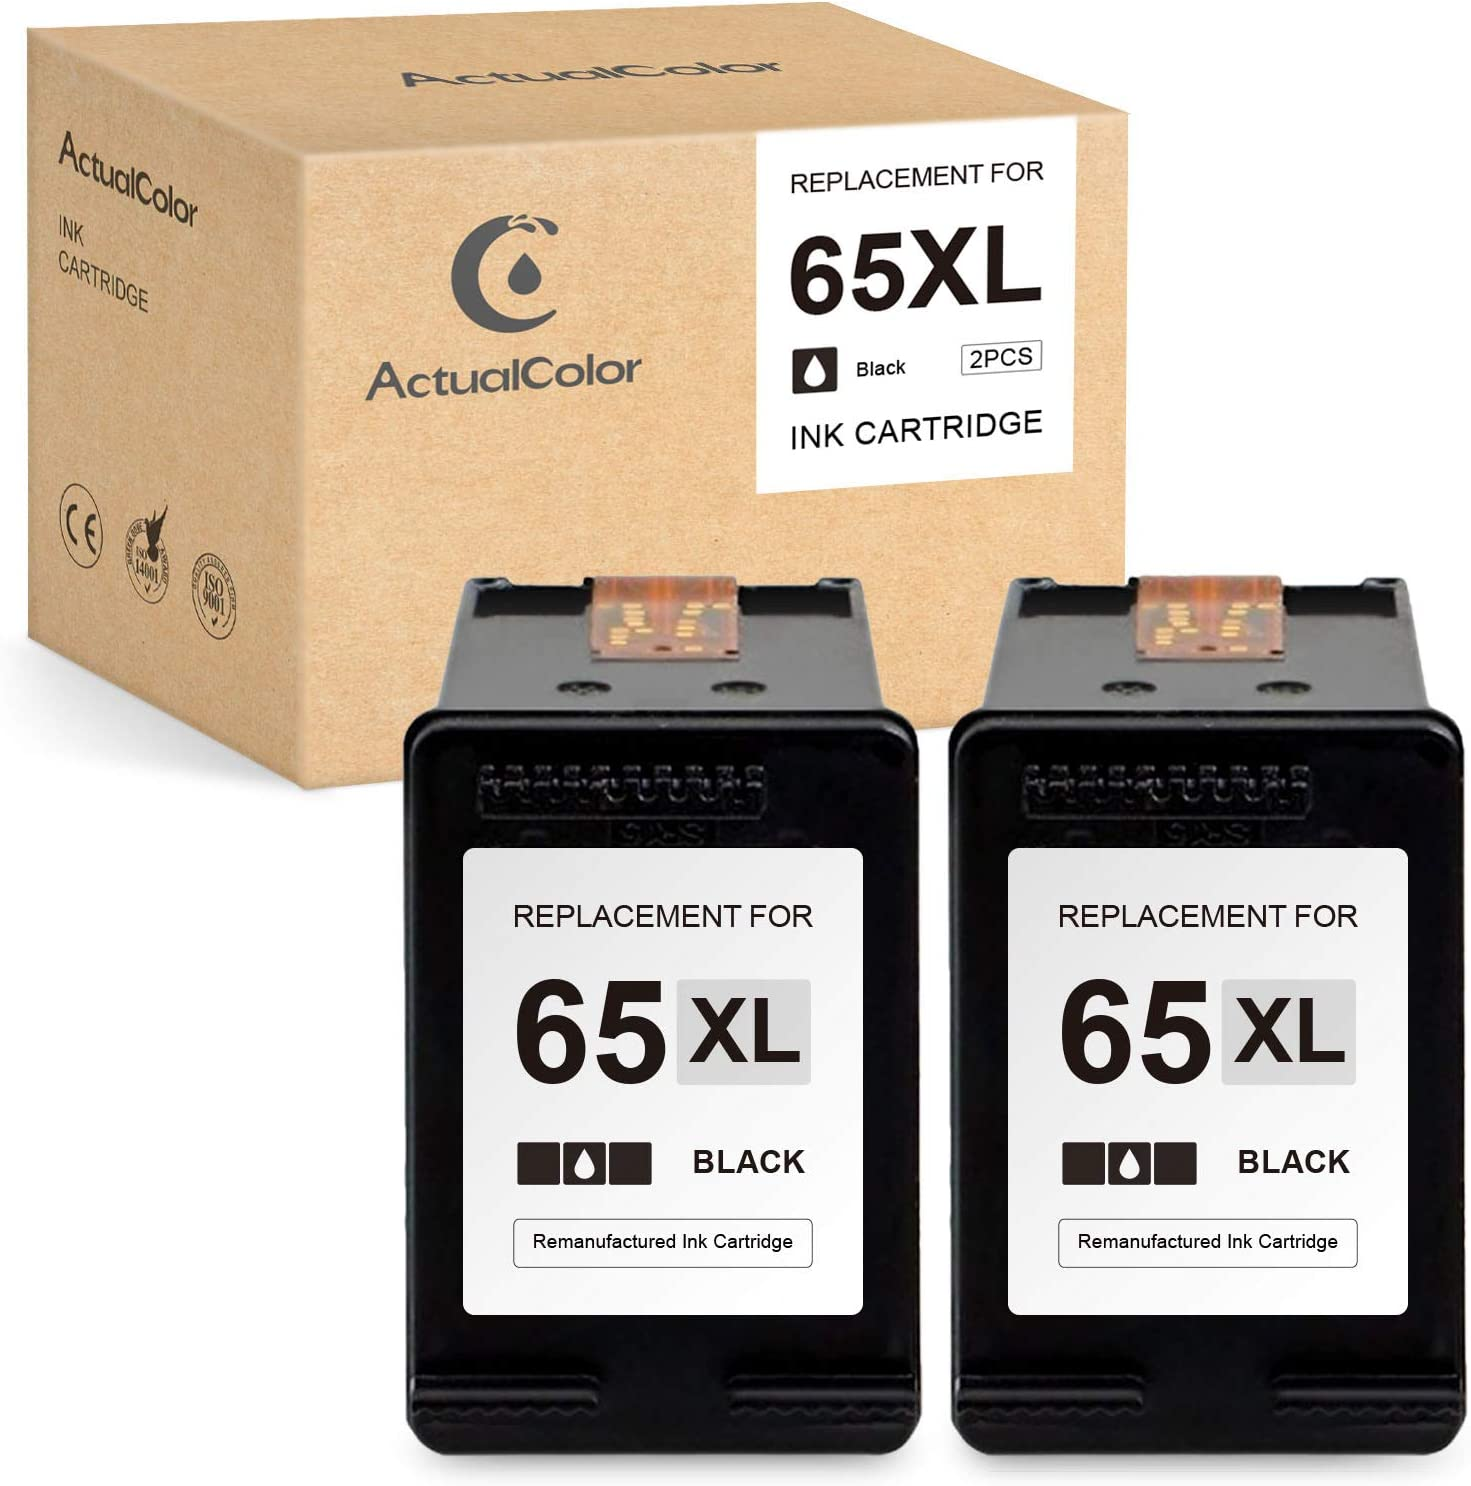 ActualColor C Remanufactured Ink Cartridge Replacement for HP 65 XL 65XL for Envy Envy 5055 5052 5010 Deskjet 3755 3752 2655 3755 2652 2622 2624 3720 3722 2630 AMP 100 120 125 130 (Black,2 Pack)